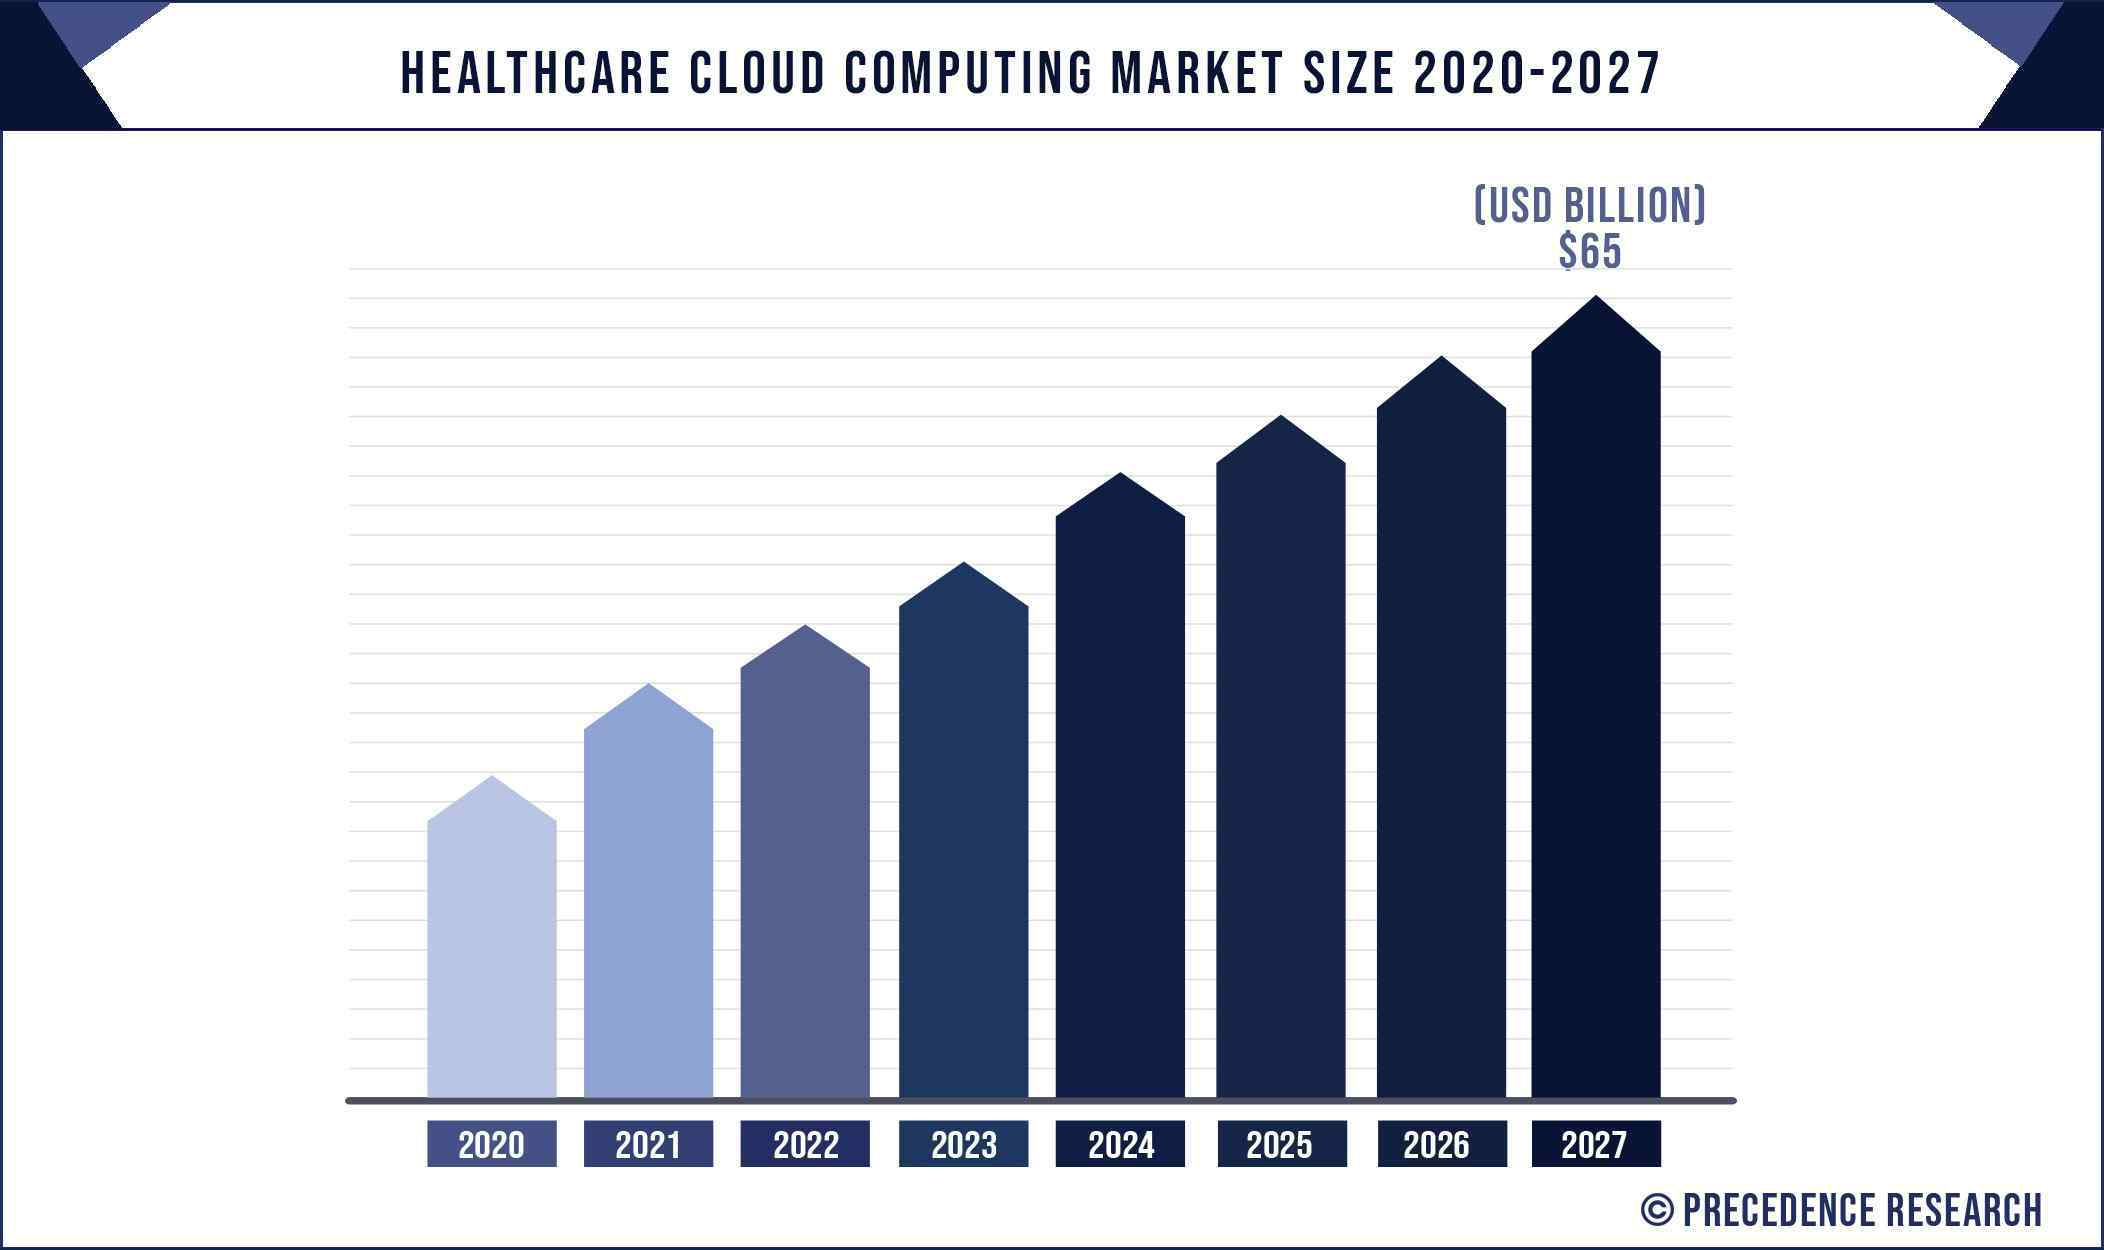 Healthcare Cloud Computing Market Size 2020 to 2027